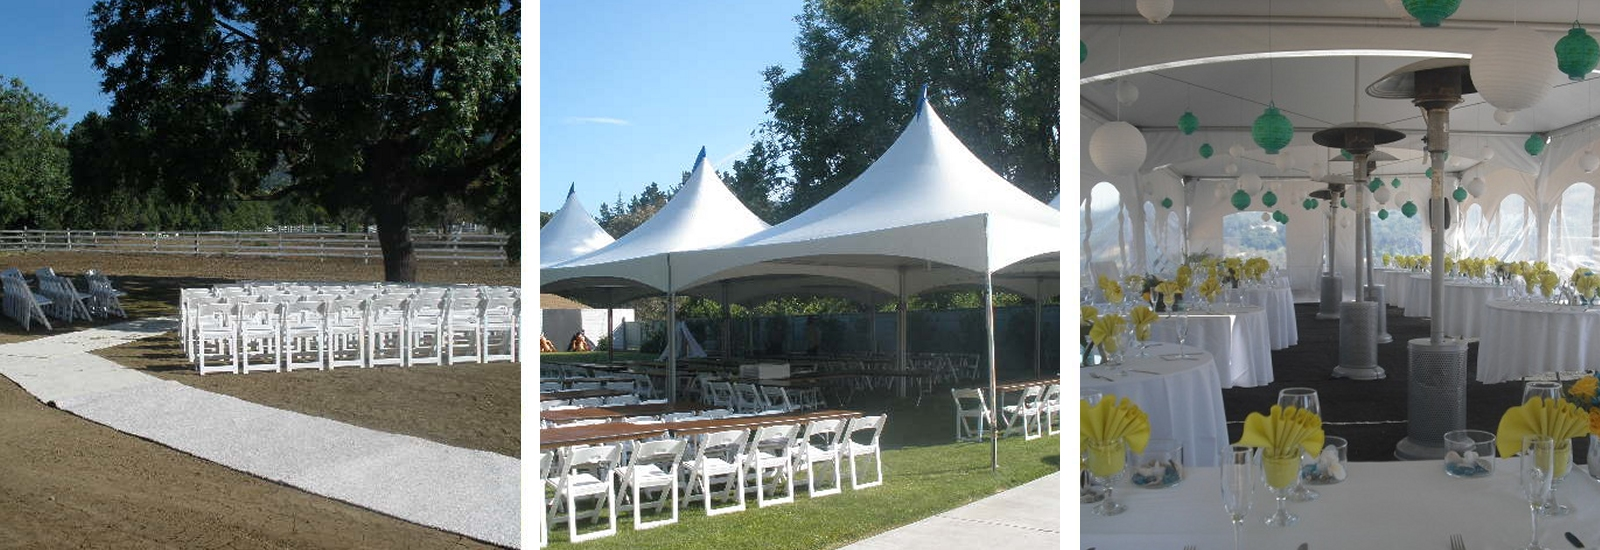 Party and Special Event Rentals in the Greater Contra Costa Area